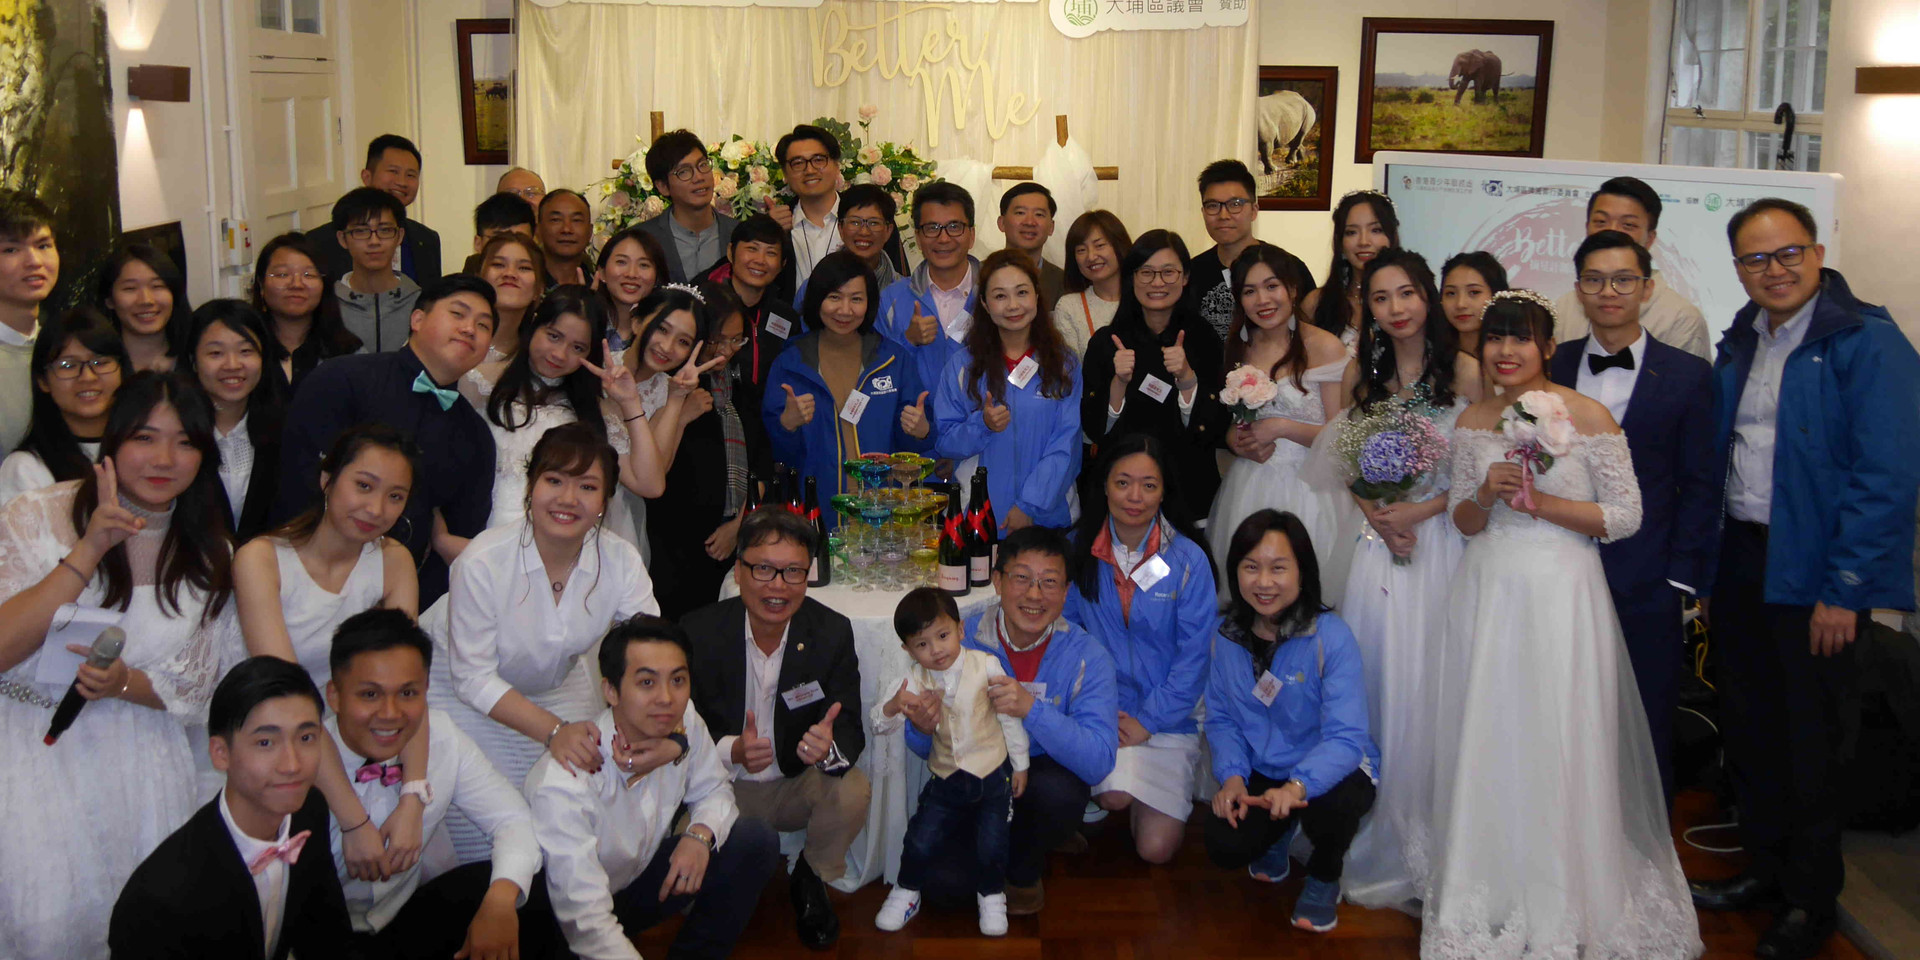 Star Reaching closing-21 group photo.jpg